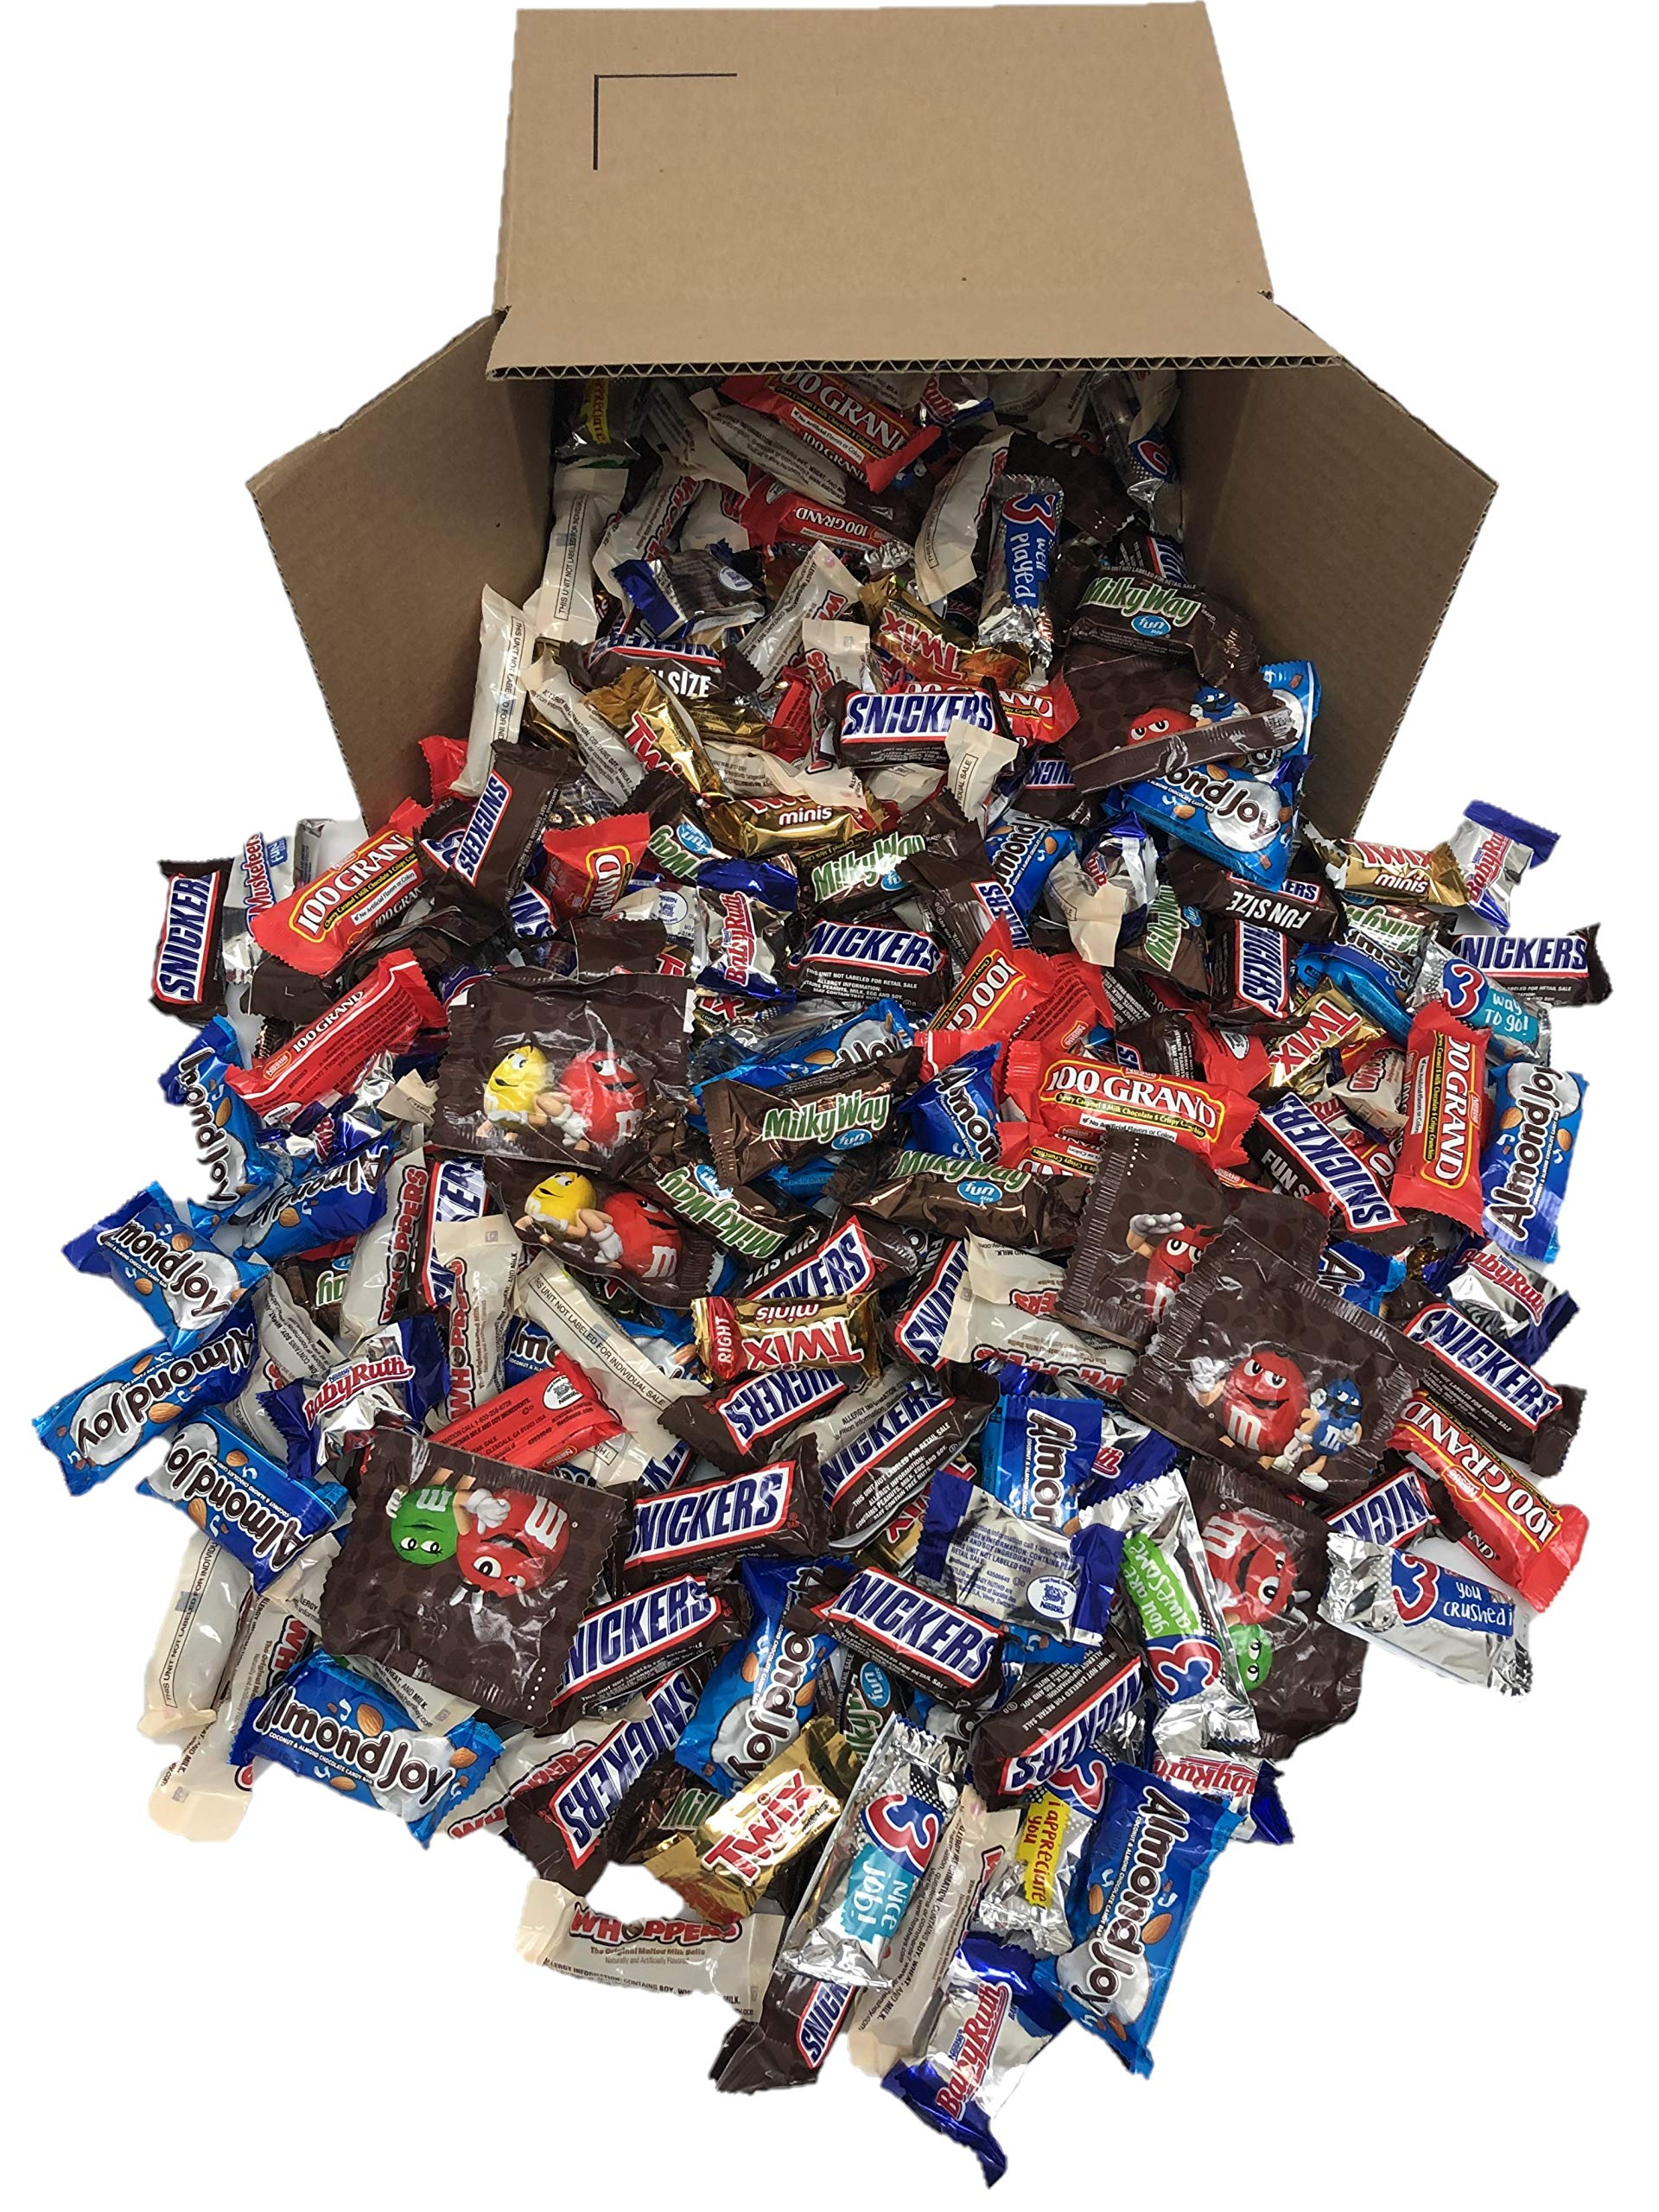 Betalicious Bulk Chocolate, Individually Wrapped: 5 LB Bag Variety Pack with M&M, Musketeers, Milky Way, Twix, Snickers, 100 Grand, Almond Joy. Baby Ruth and Whoppers by Betalicious